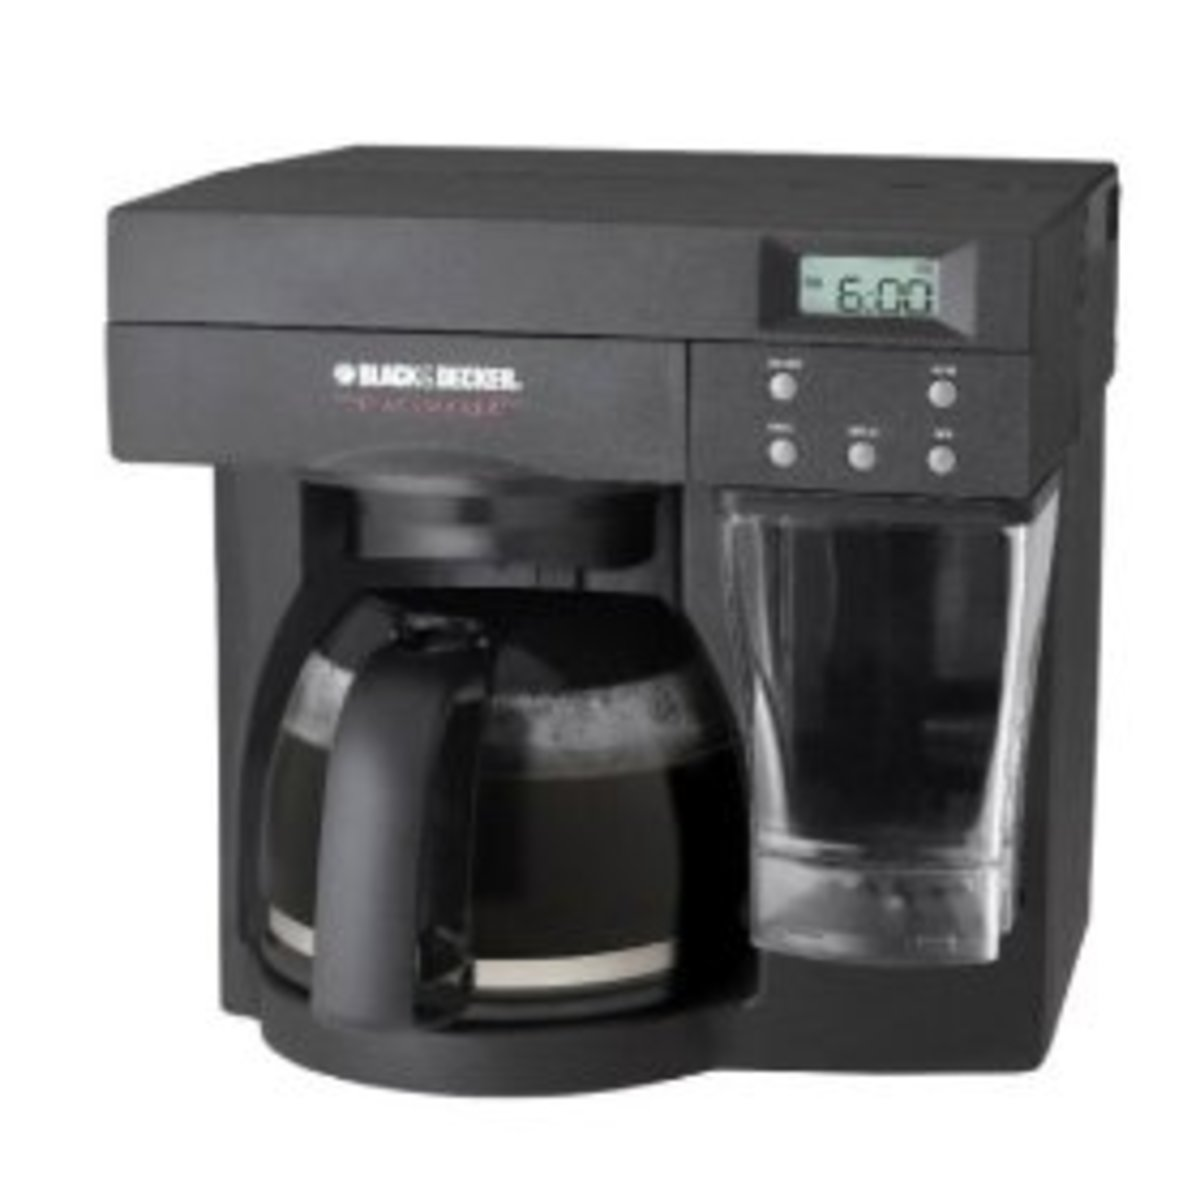 Black & Decker ODC440B Spacemaker Coffeemaker, Black